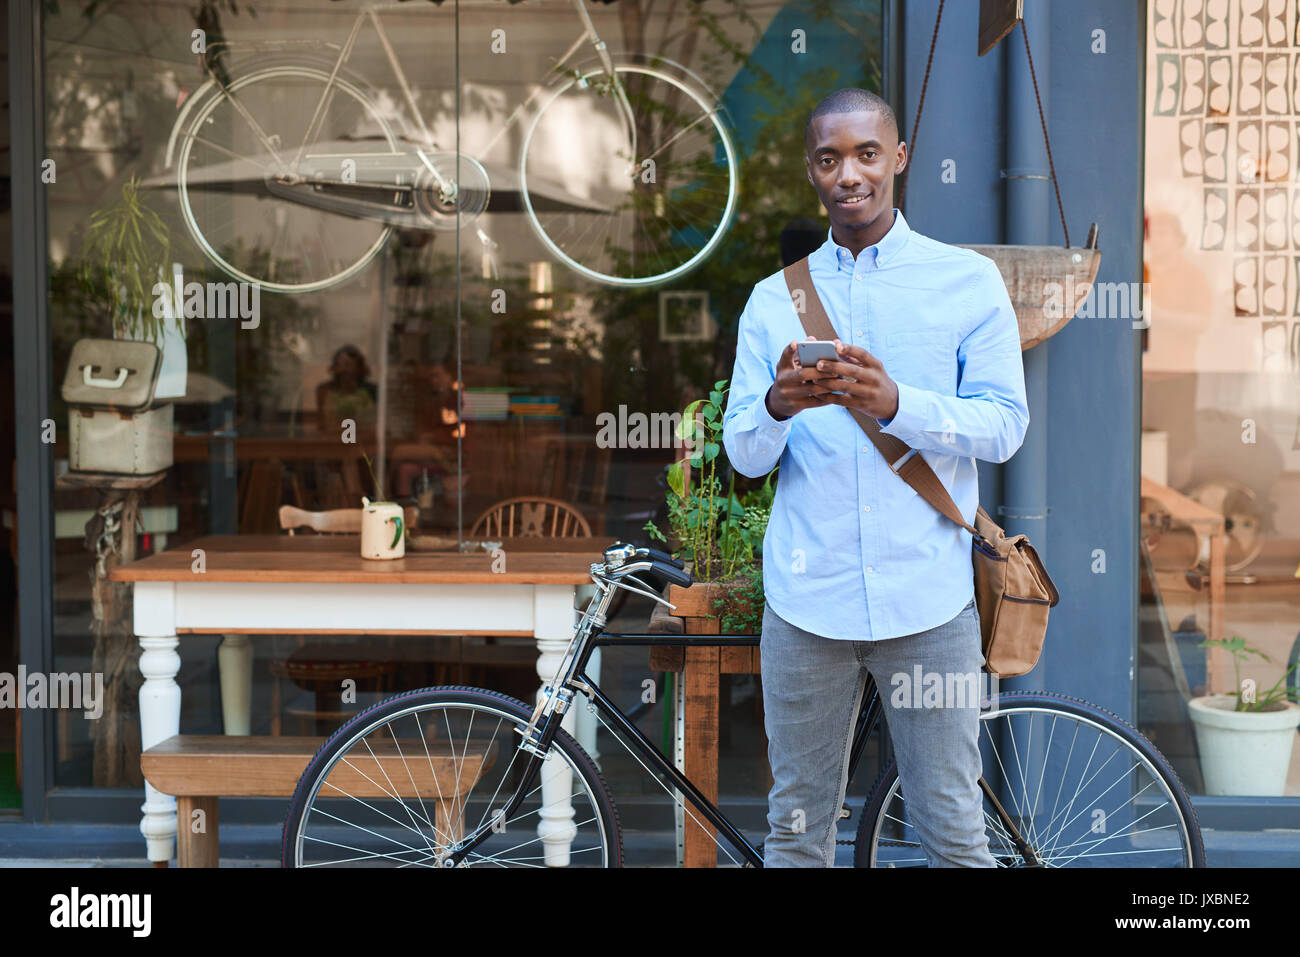 Smiling young man standing in the street reading text messages - Stock Image